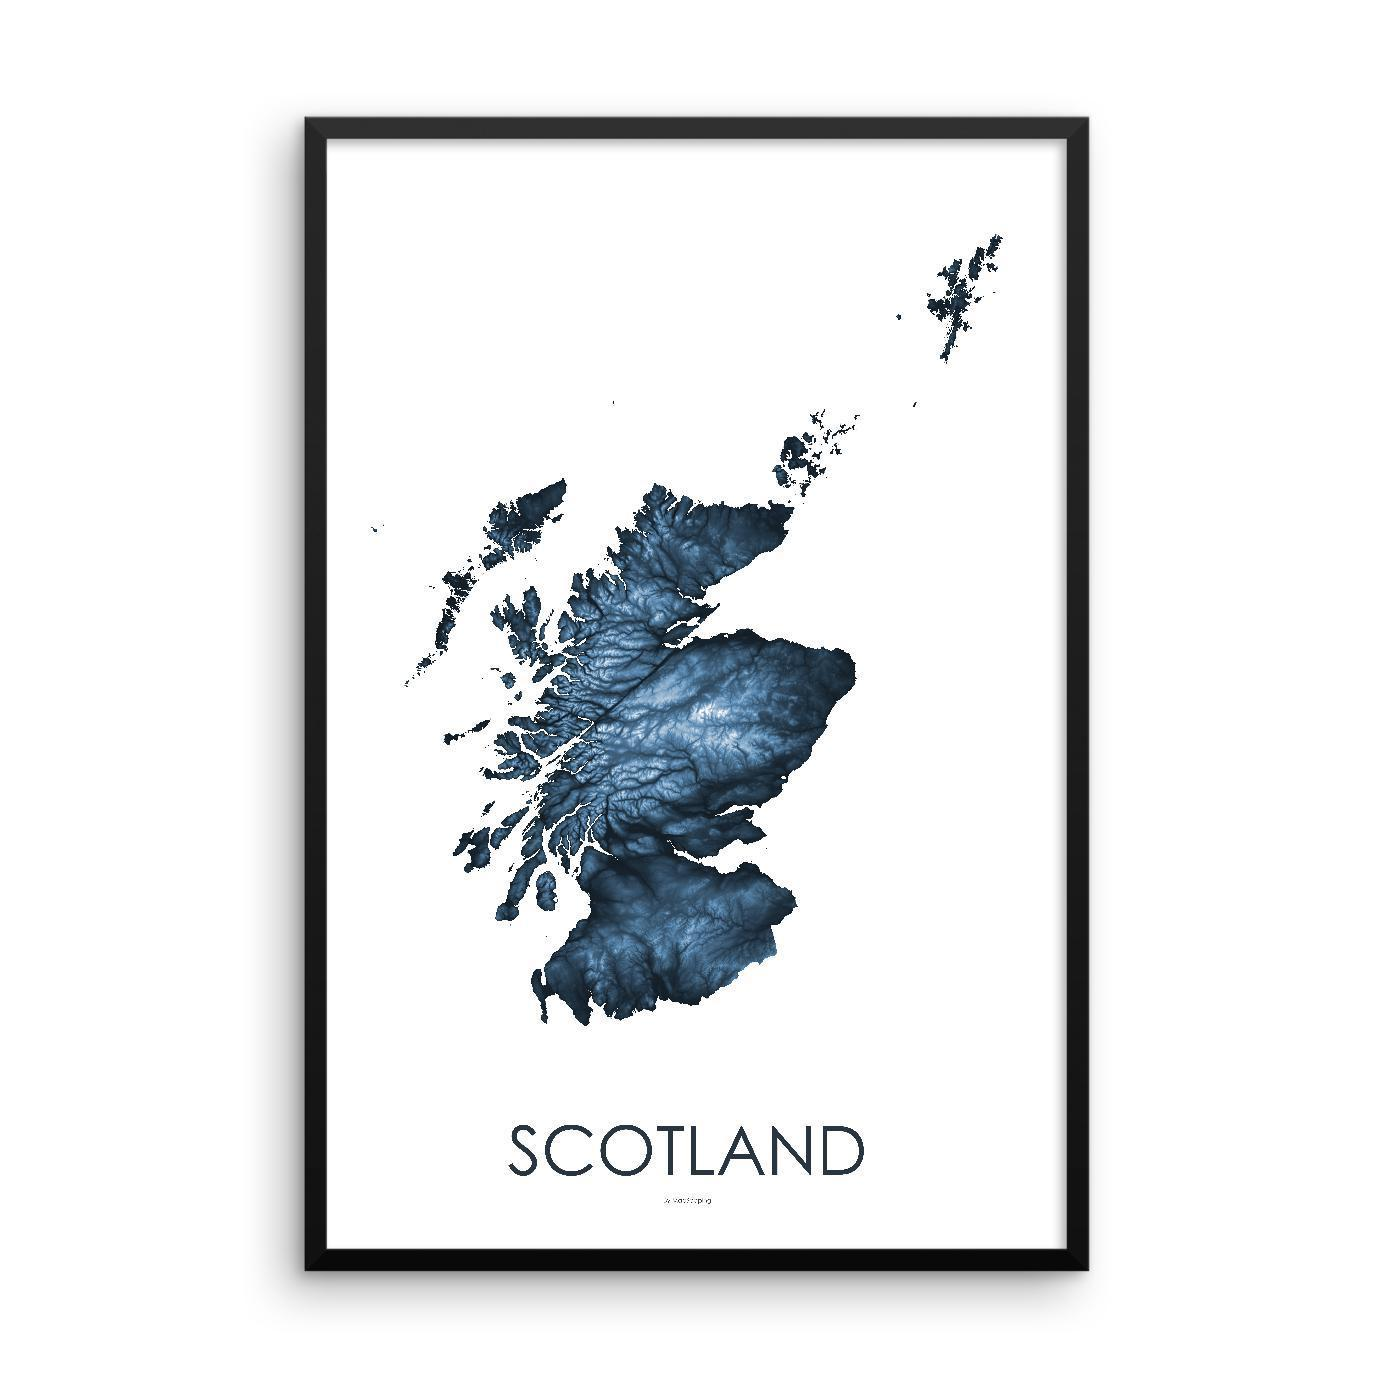 Scotland Poster Midnight Blue-topographic wall art map by MapScaping